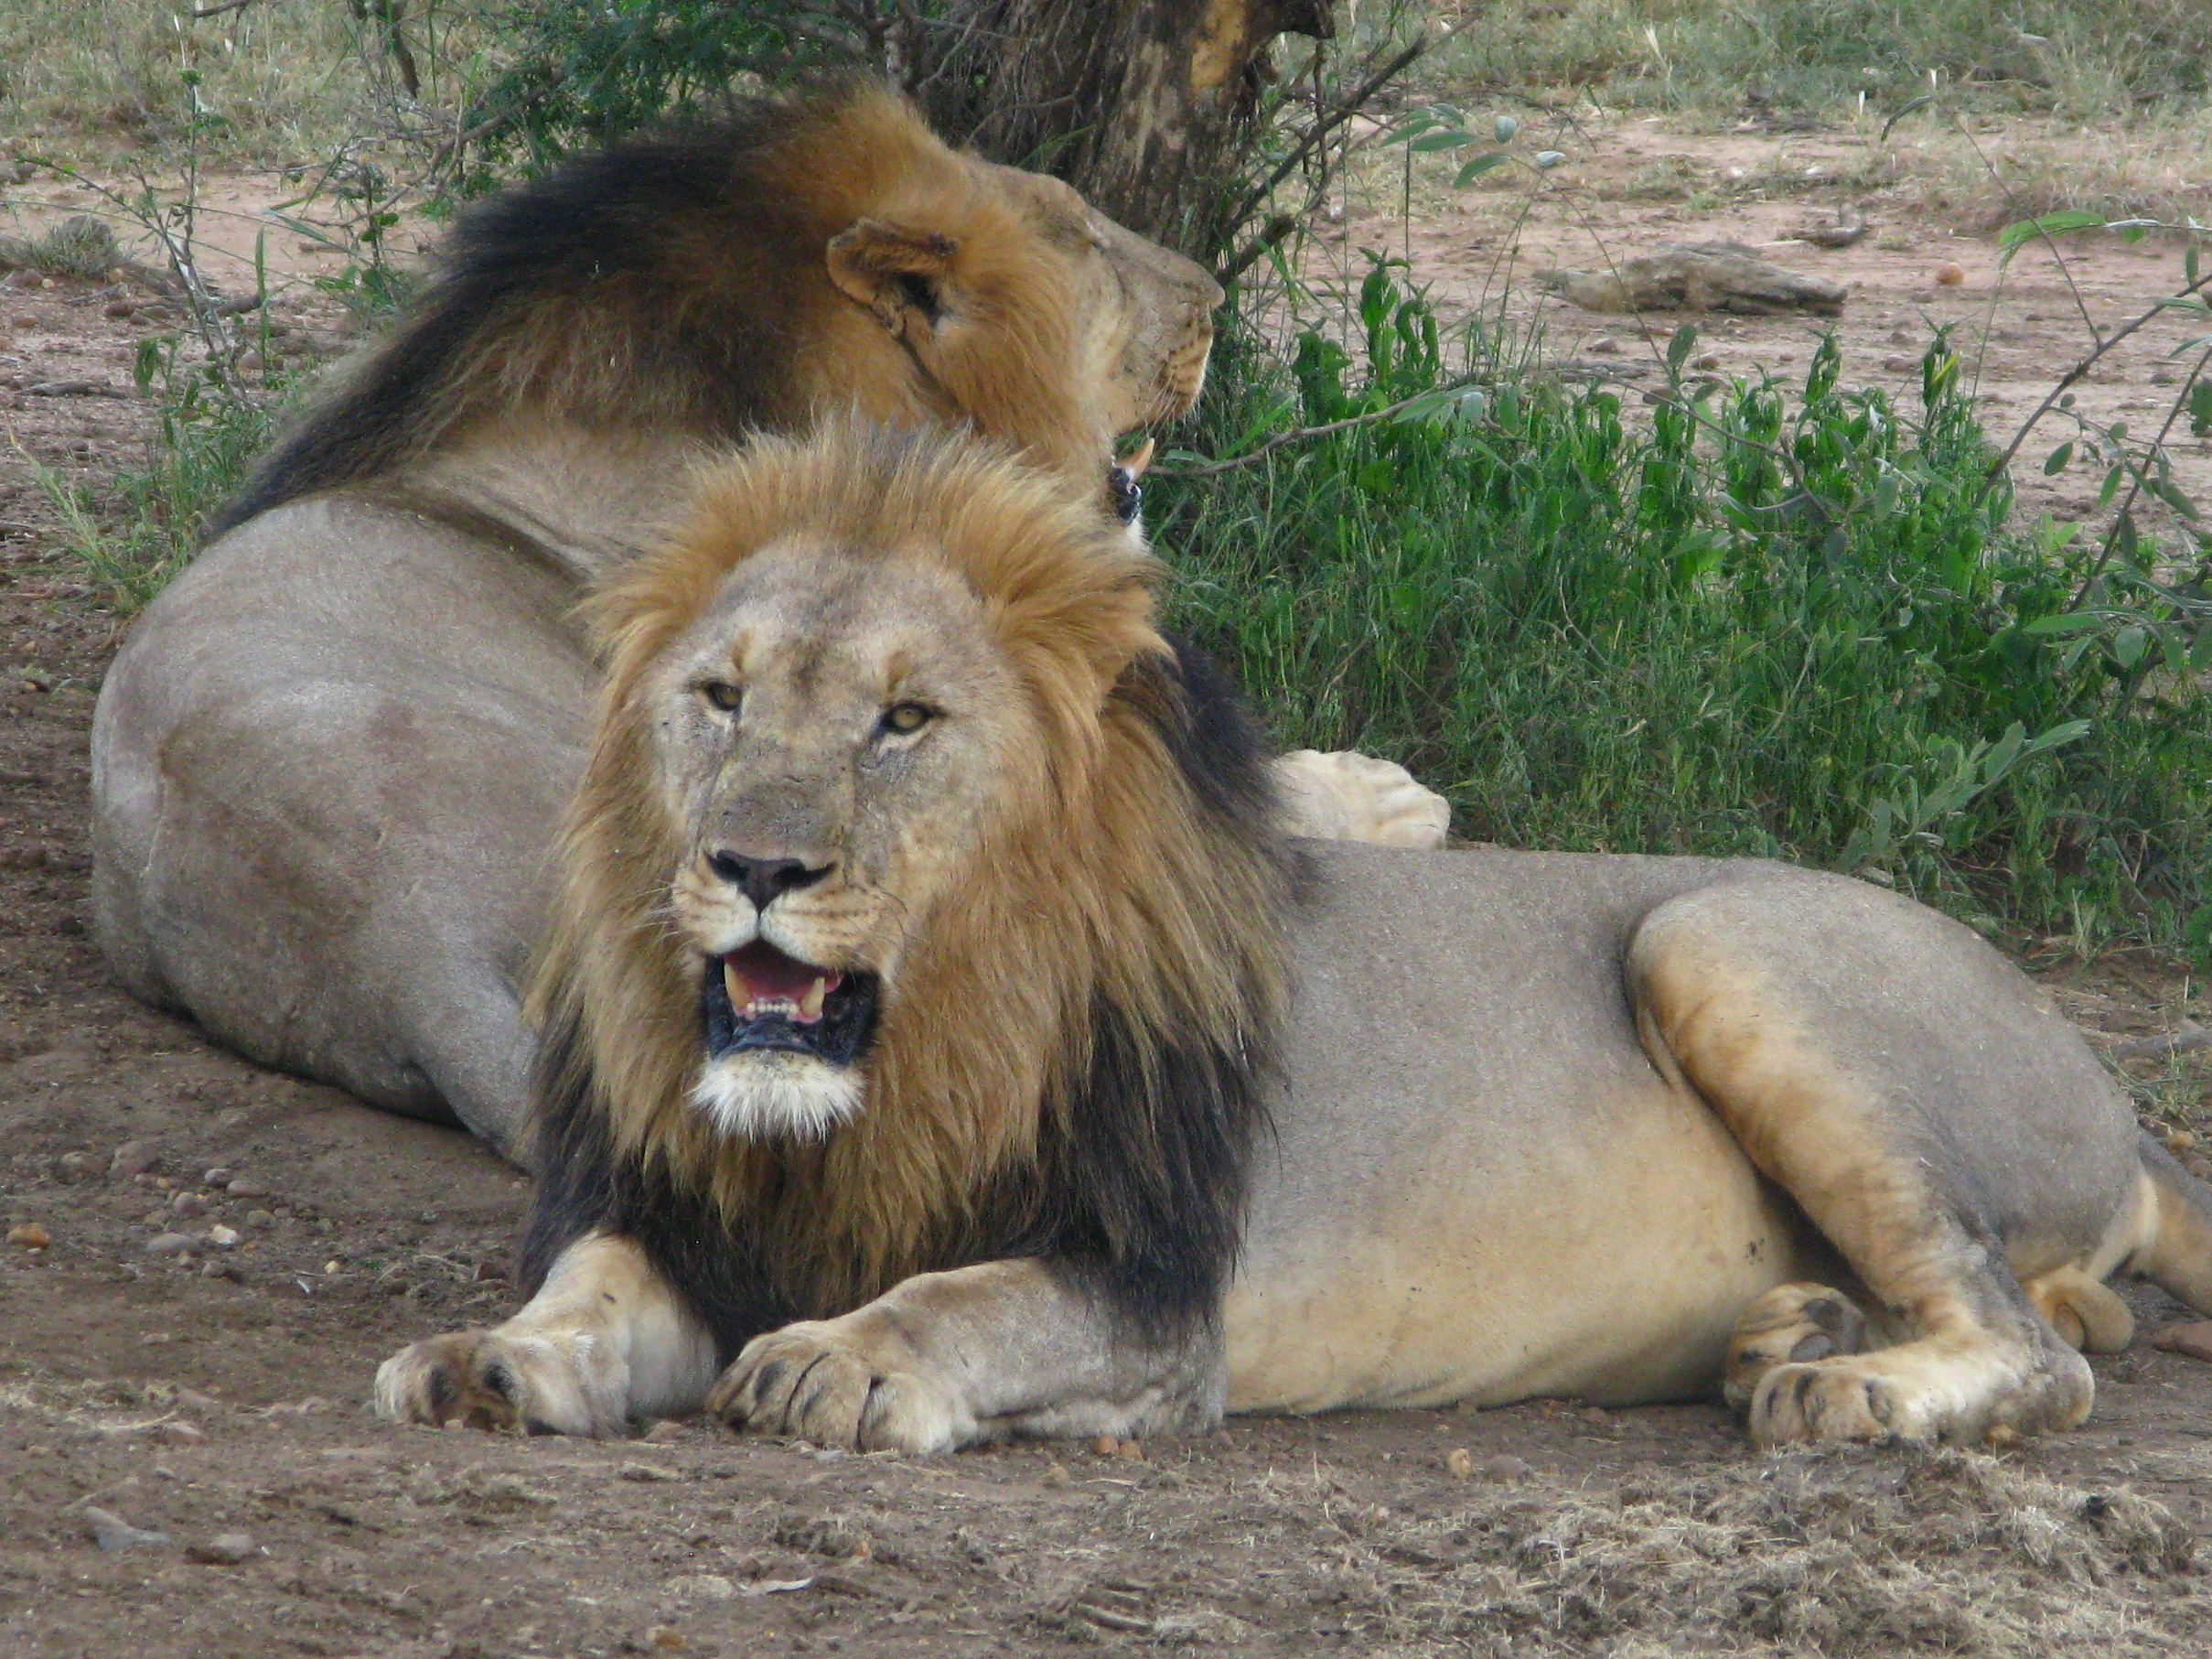 Lions Quickly Disappearing In Much Of Africa, Study Says